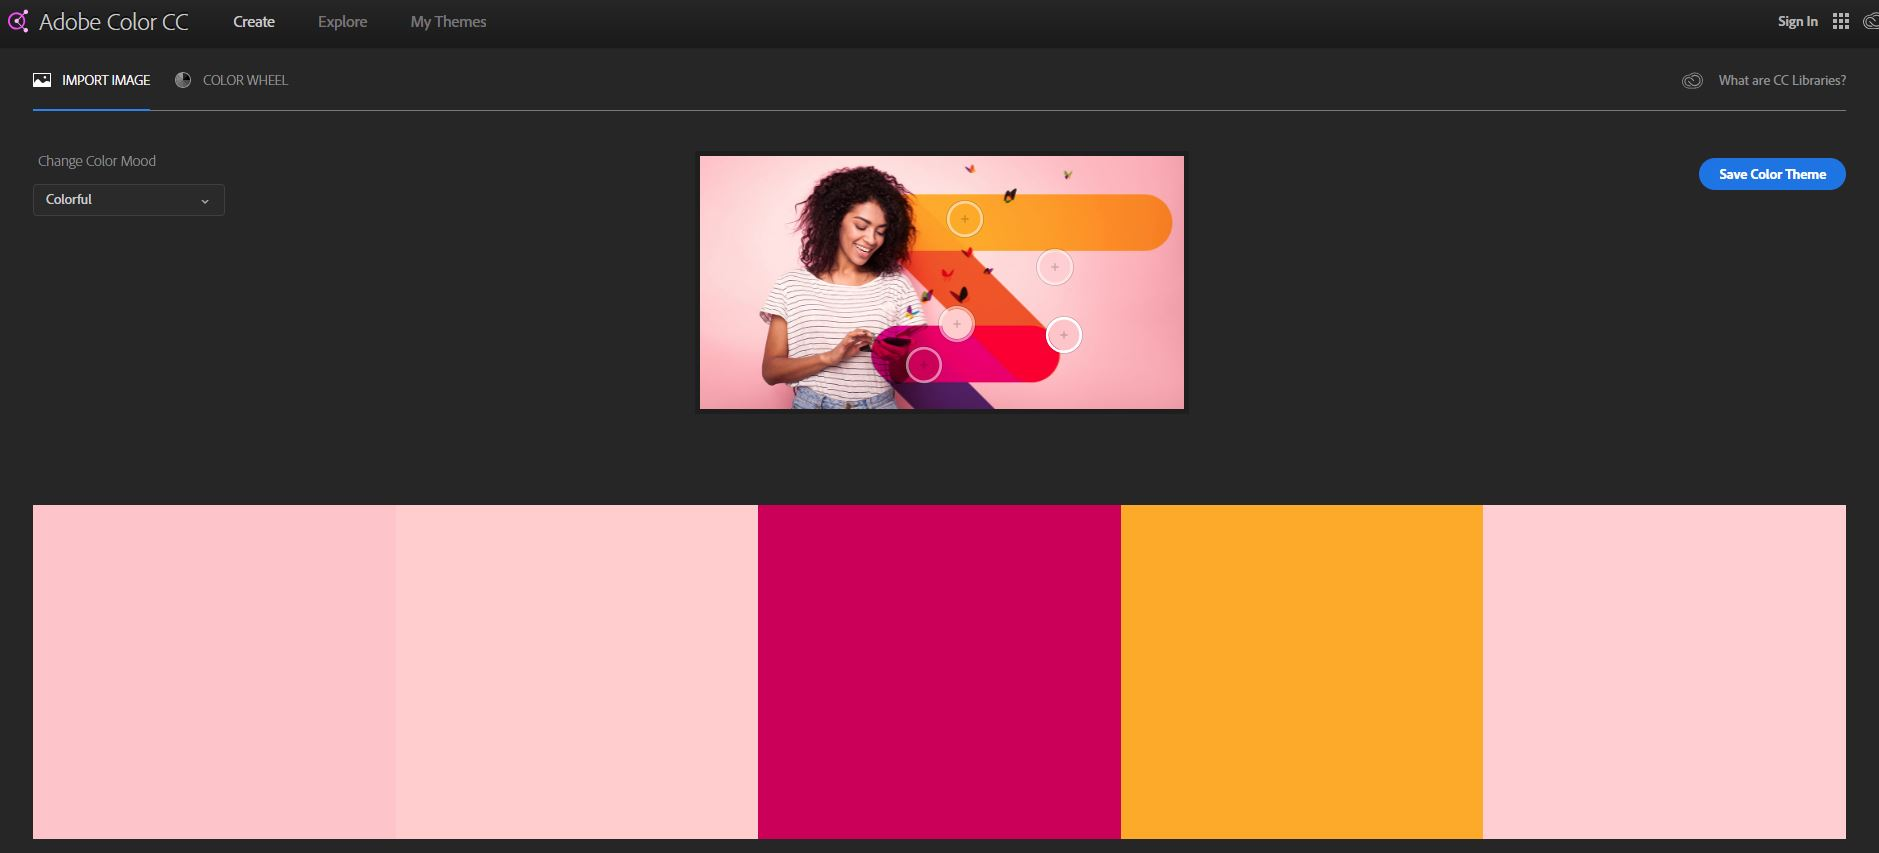 Free image editing software adobe color wheel CC